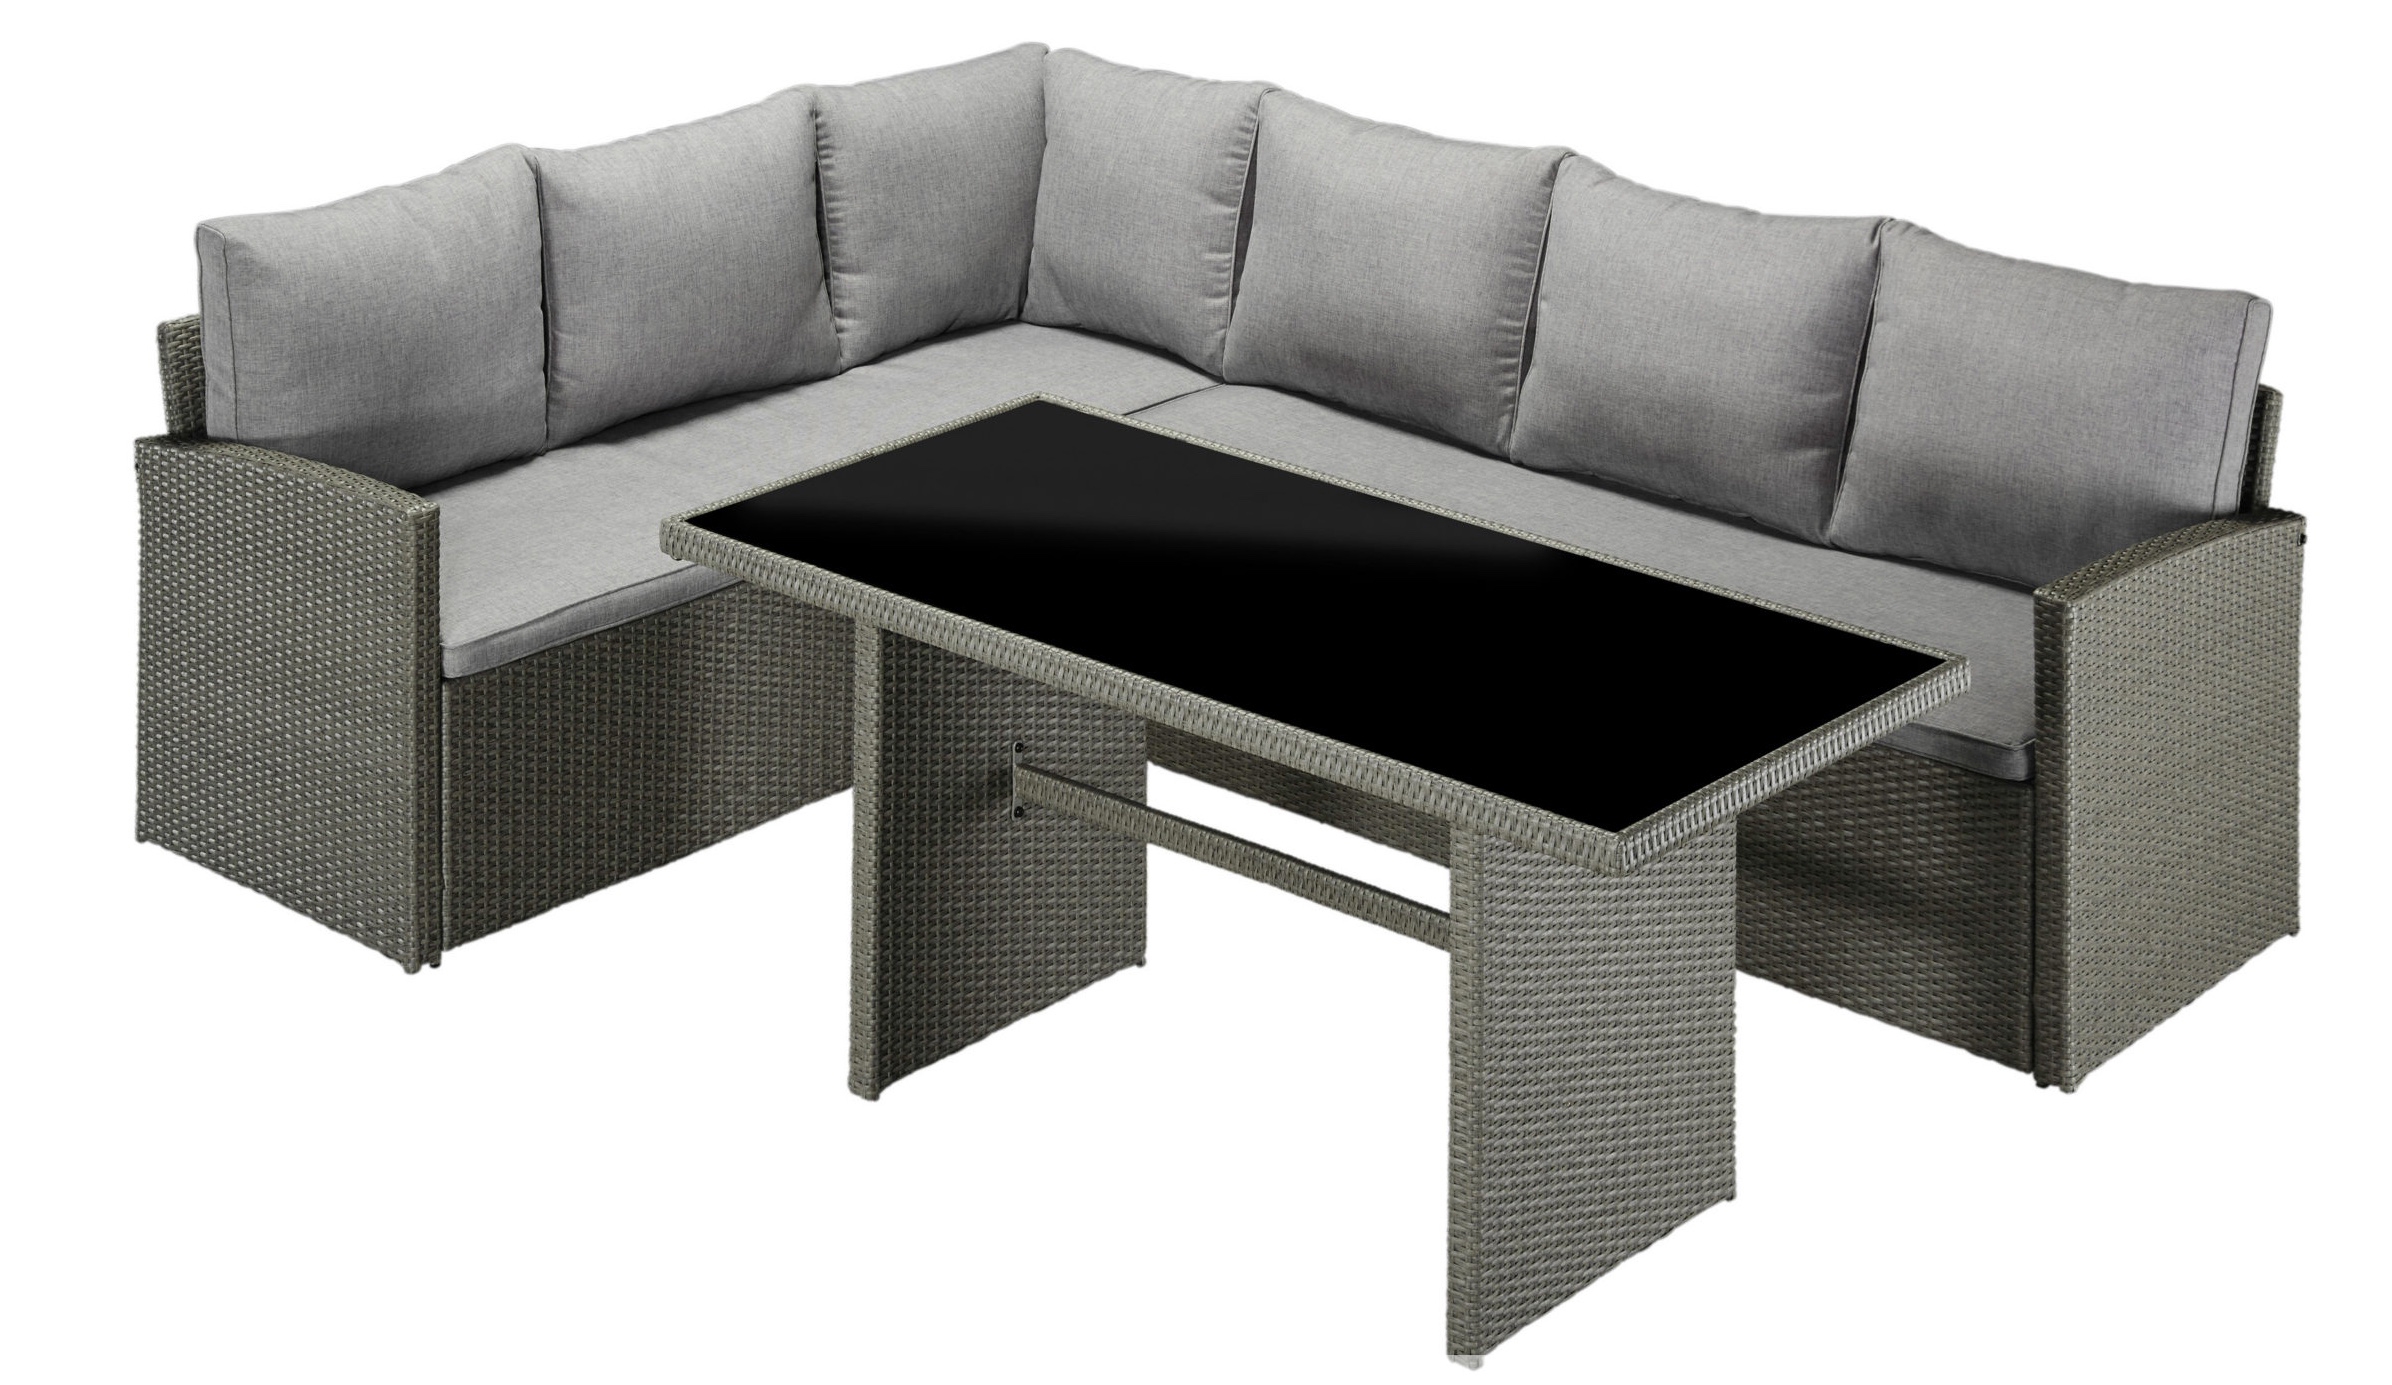 ecklounge gratengruppe sitzgruppe polyrattan tisch 145x70. Black Bedroom Furniture Sets. Home Design Ideas